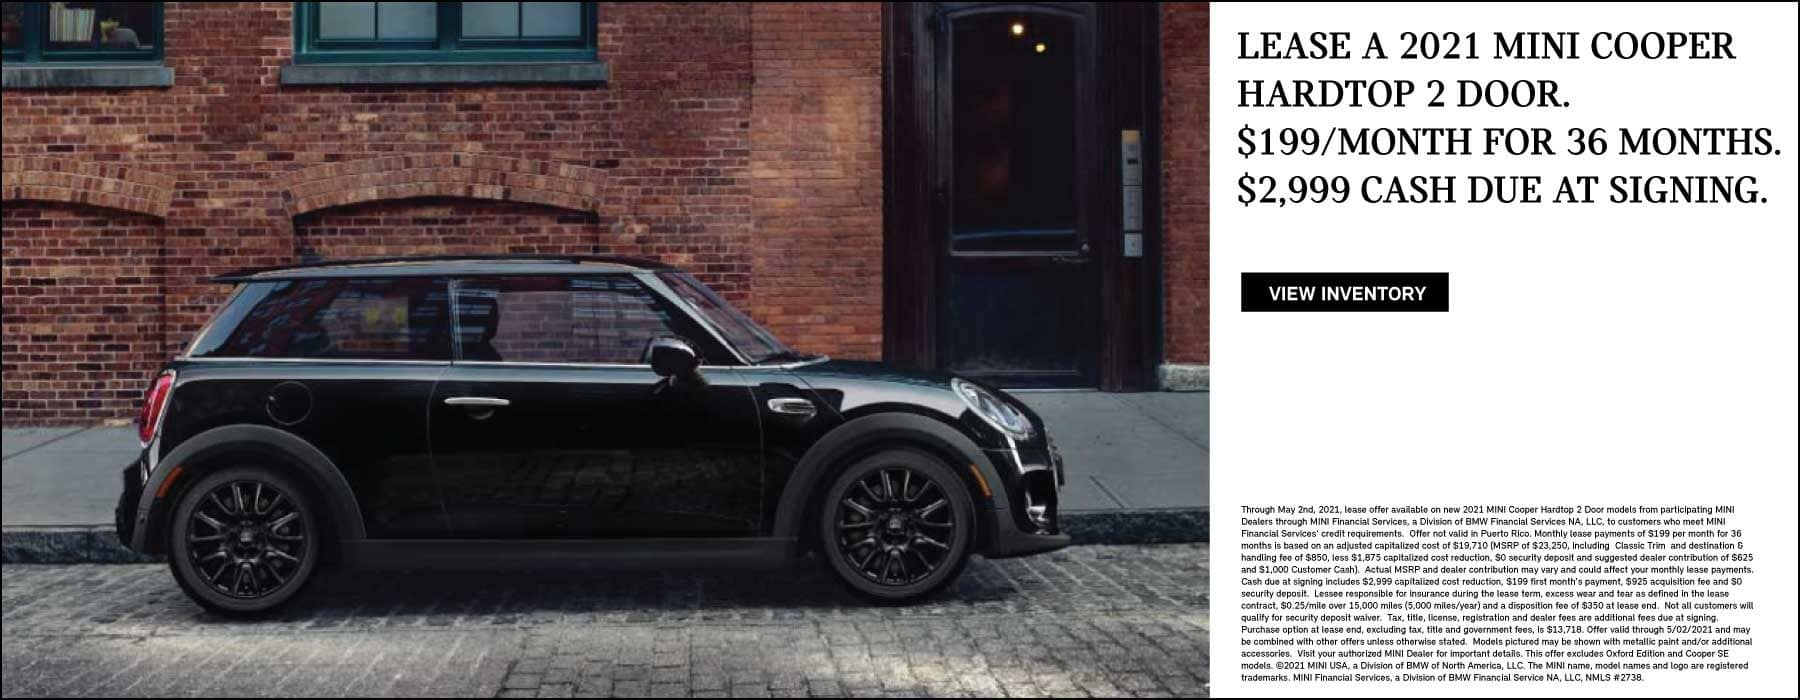 Lease a 2021 MINI Cooper Hardtop 2 door. $199/month for 36 months. $2,999 cash due at signing.